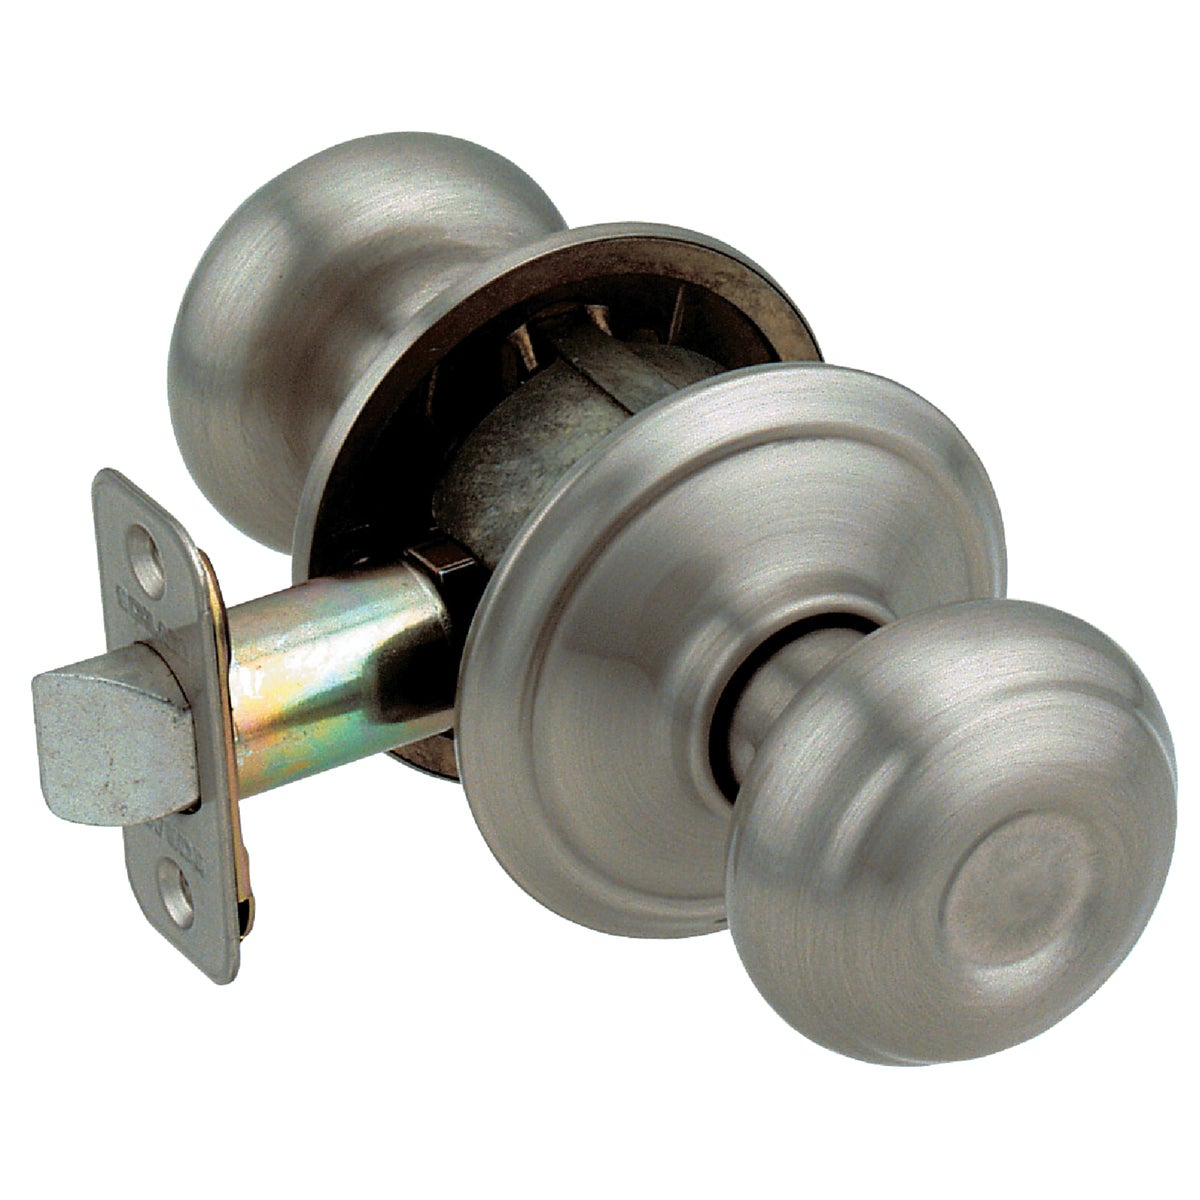 AP GEORGIAN PASSAGE KNOB - F10VGEO620 by Schlage Lock Co